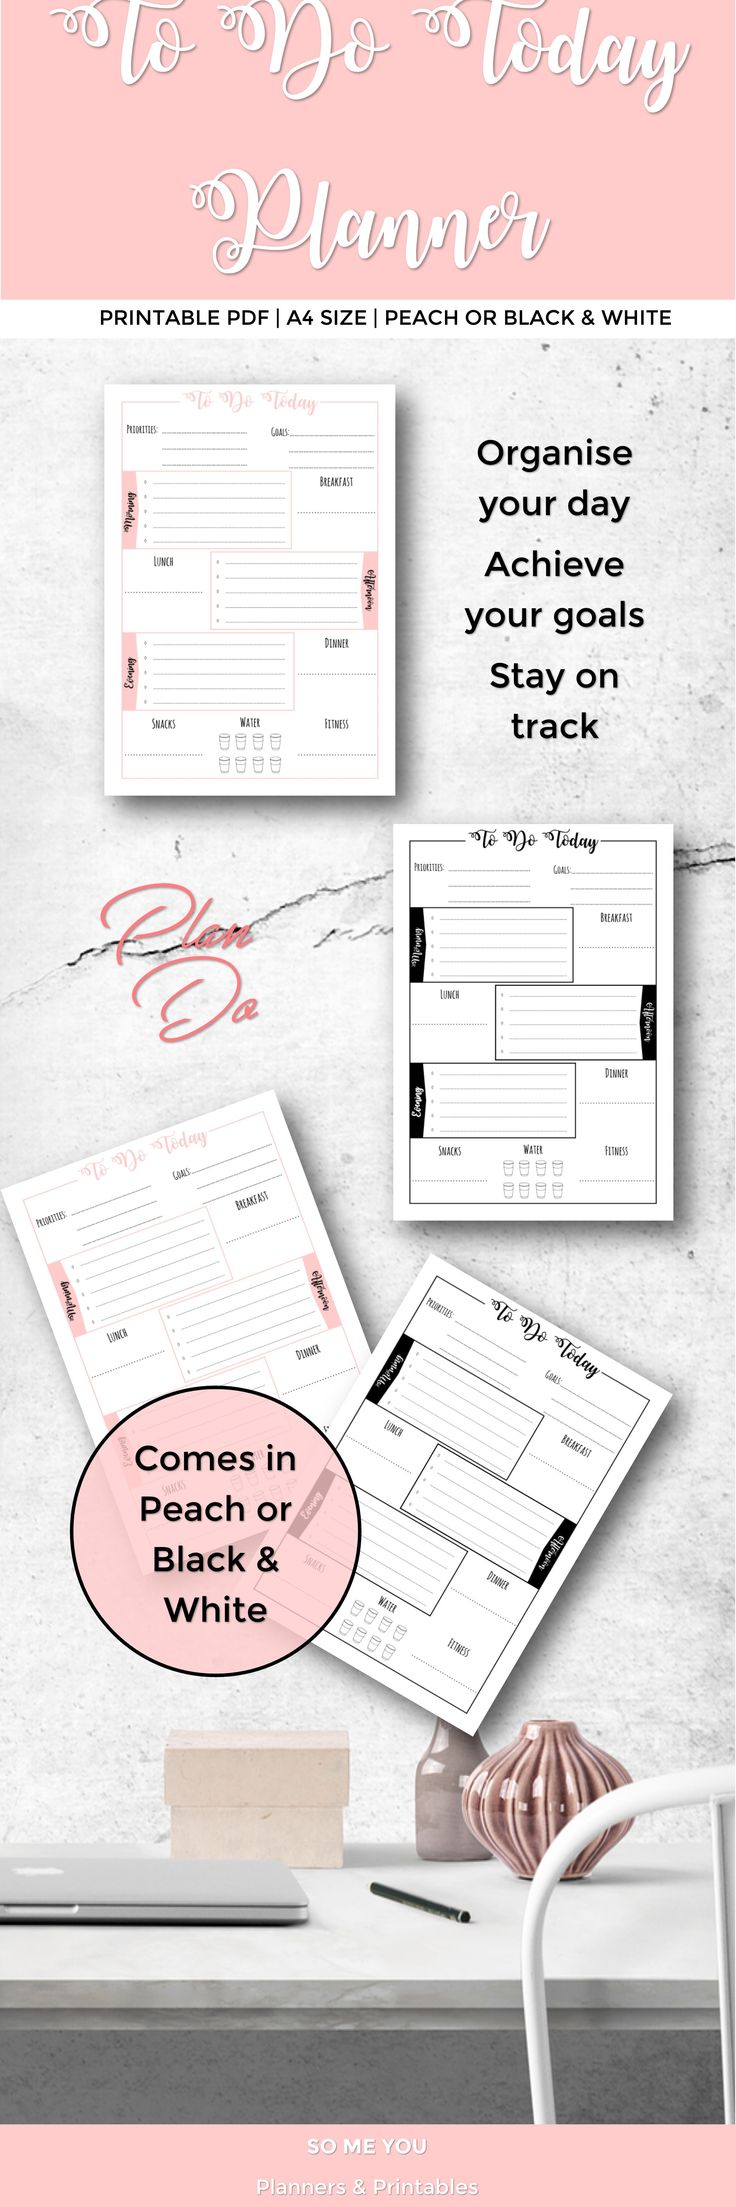 """DAILY PRINTABLE PLANNER  Daily Printable Planner. One for each day. Includes a daily method of operation list which acts as a daily schedule of certain tasks you should be doing daily in your business or life to promote growth and achieve your goals. """"Hustle with Heart"""" with this planner to help you organise your day. Write down your notes so you don't forget anything!  There is one printable planner for each day of the week."""